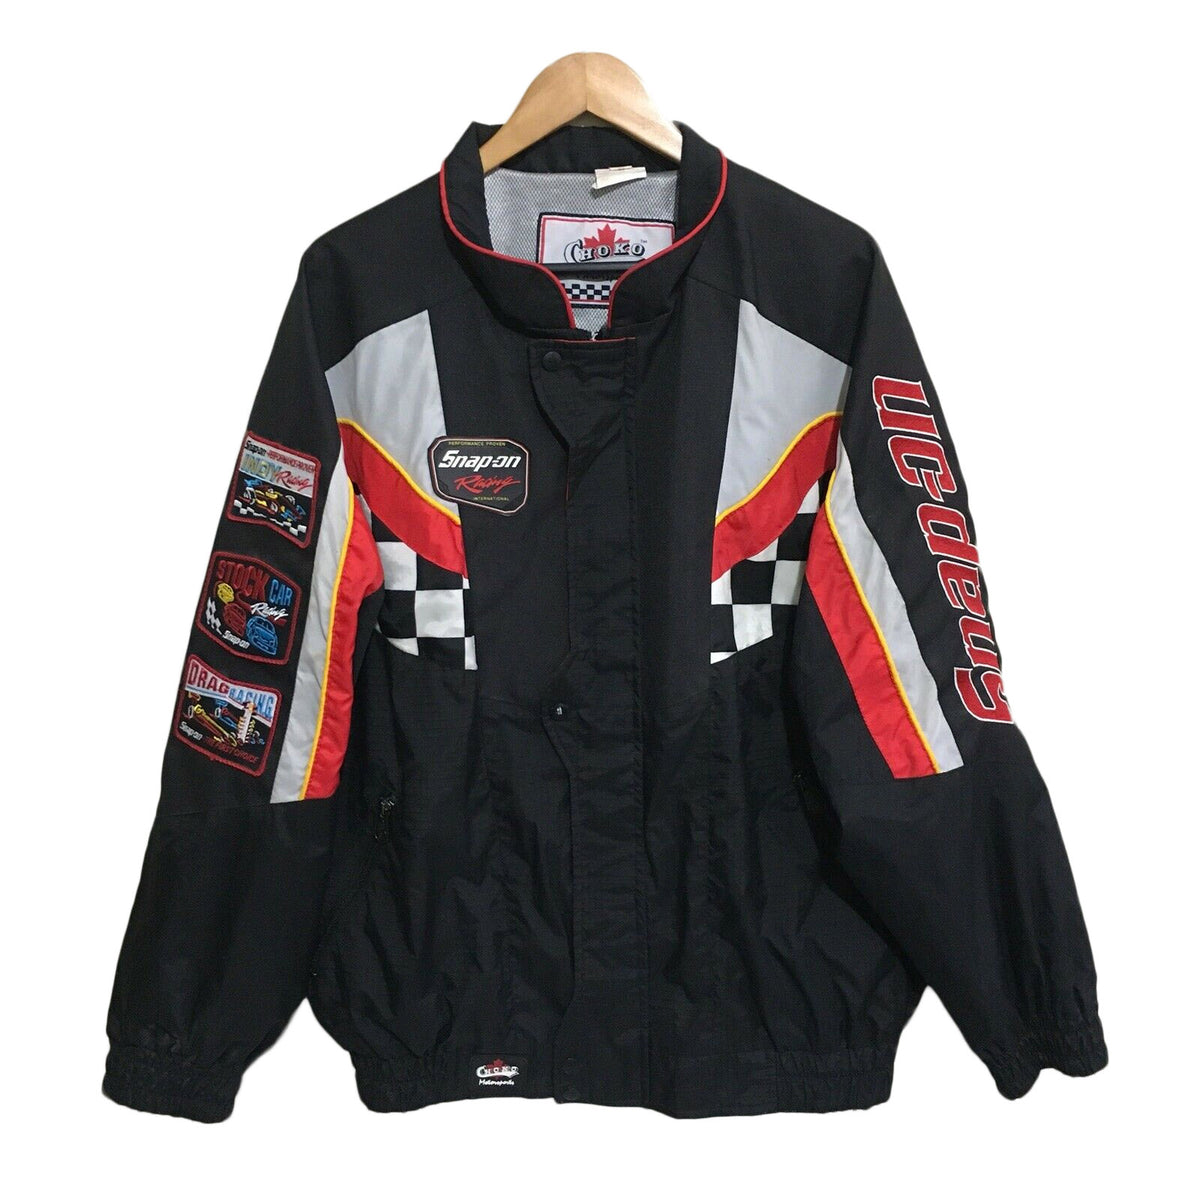 Snap-On Racing Nascar Choko Vintage 1999 Jacket Mens XL